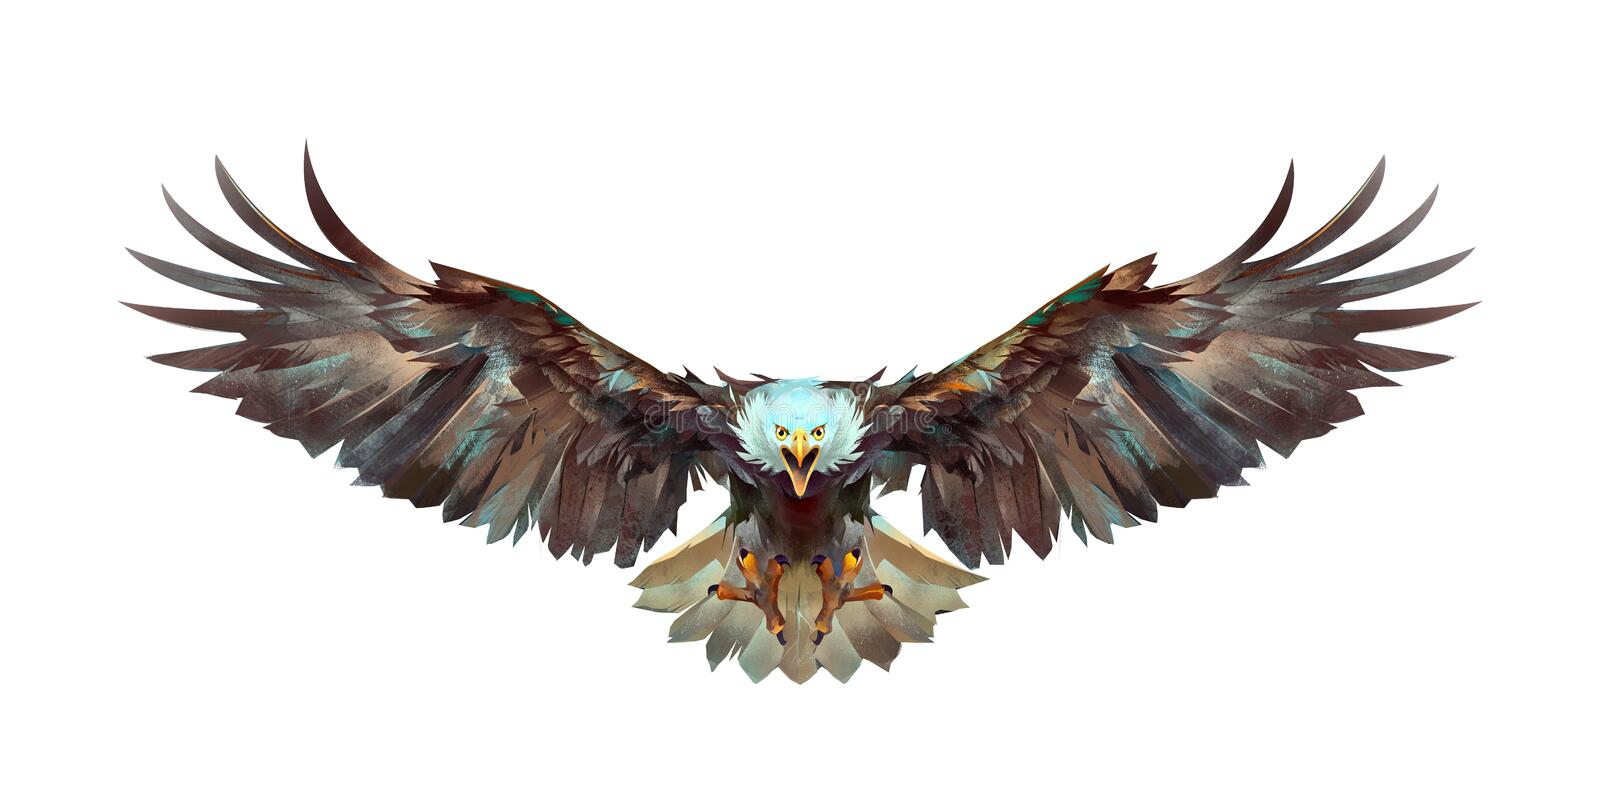 Painted a flying eagle on a white background front royalty free stock photography